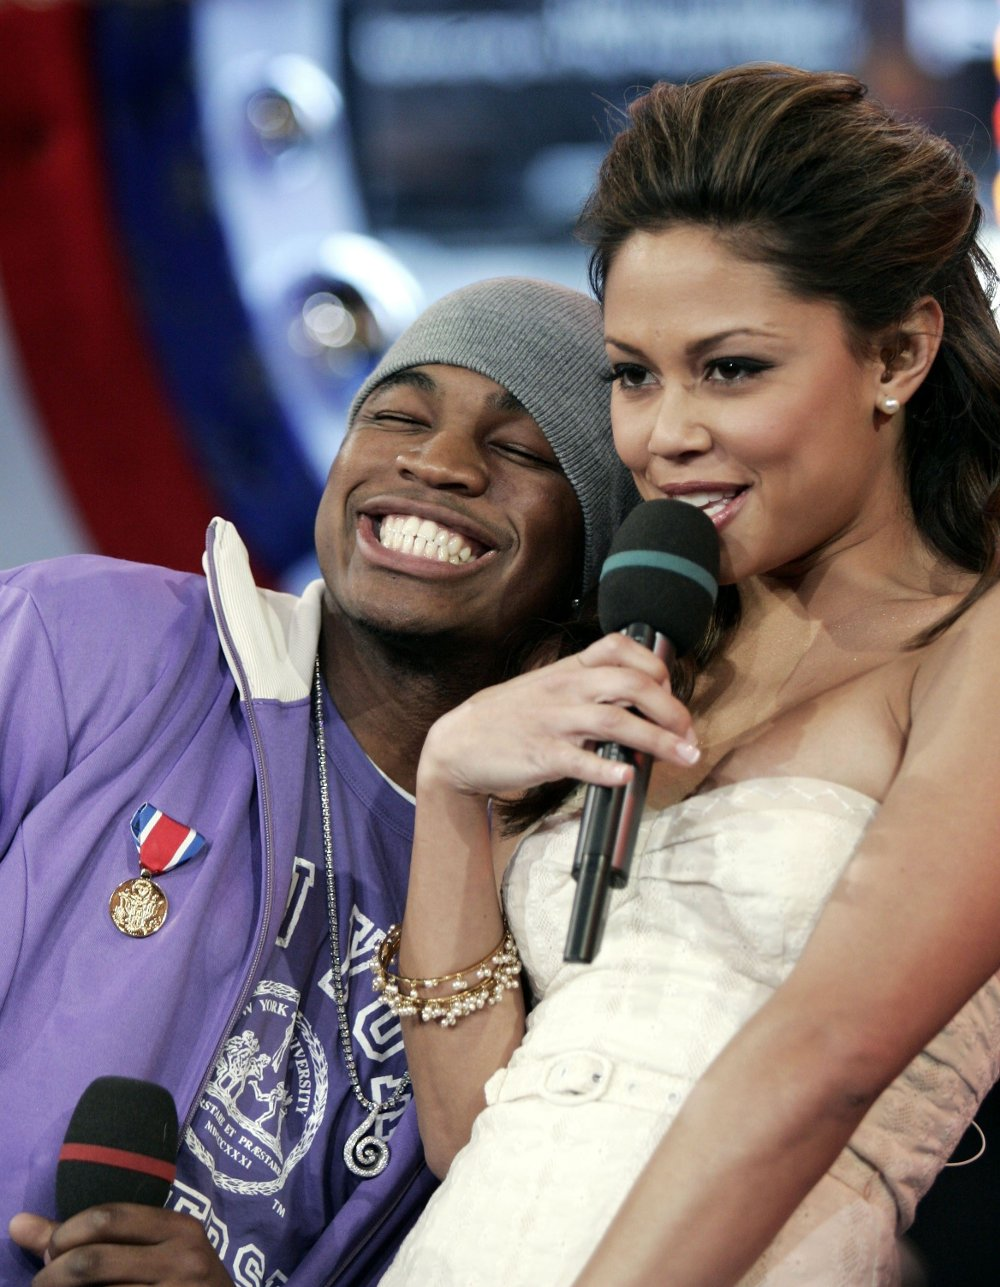 Klikk på bildet for å forstørre. Singer Ne-Yo, left, appears on stage with MTV host Vanessa Minnillo during MTV's